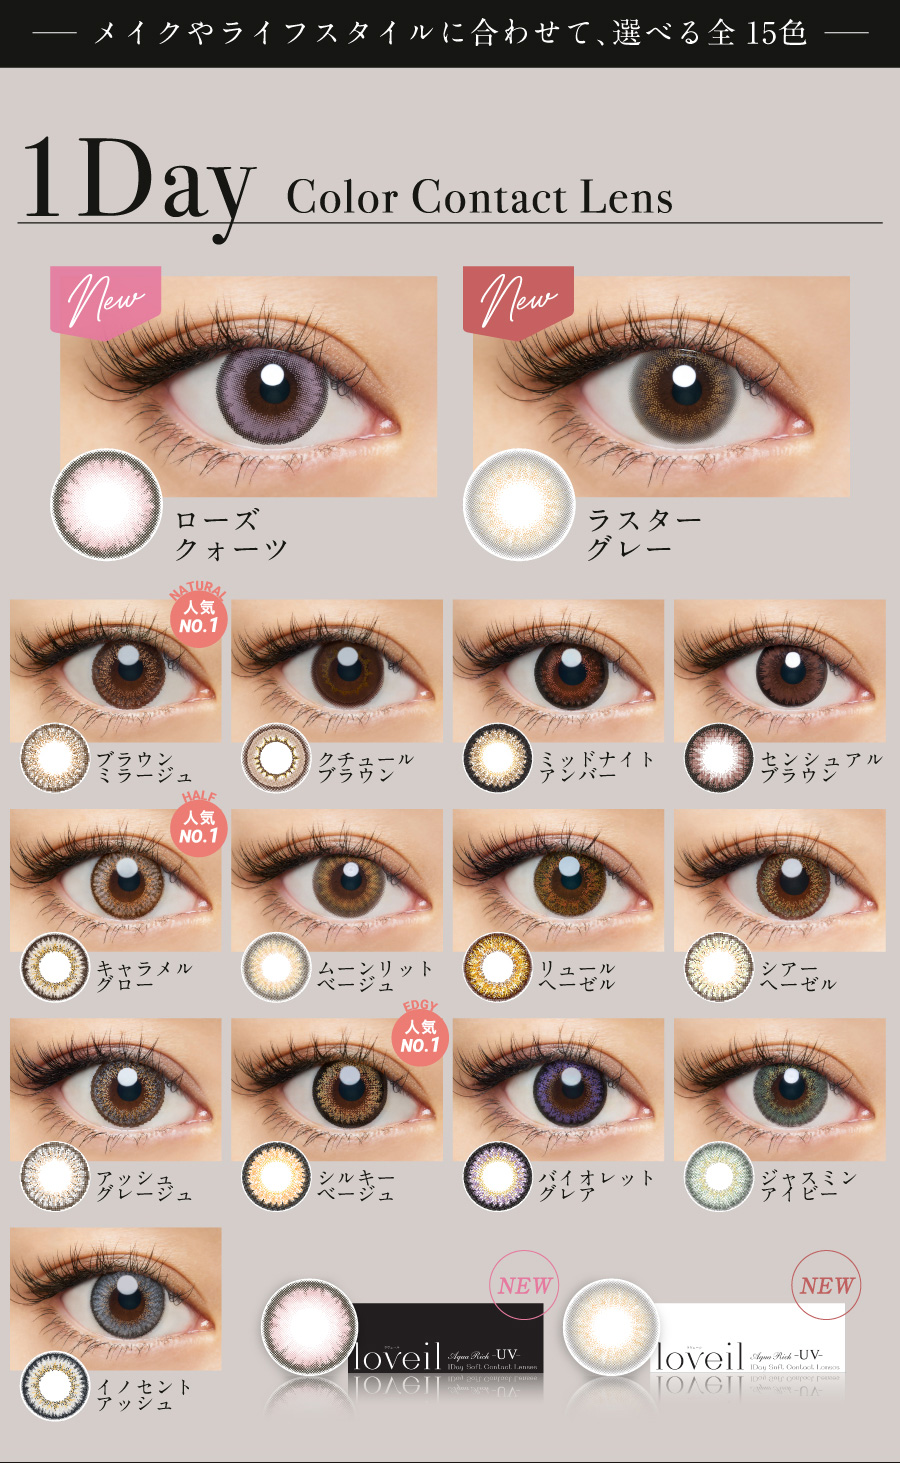 loveil Aqua rich ラヴェール 1day Color Contact Lens